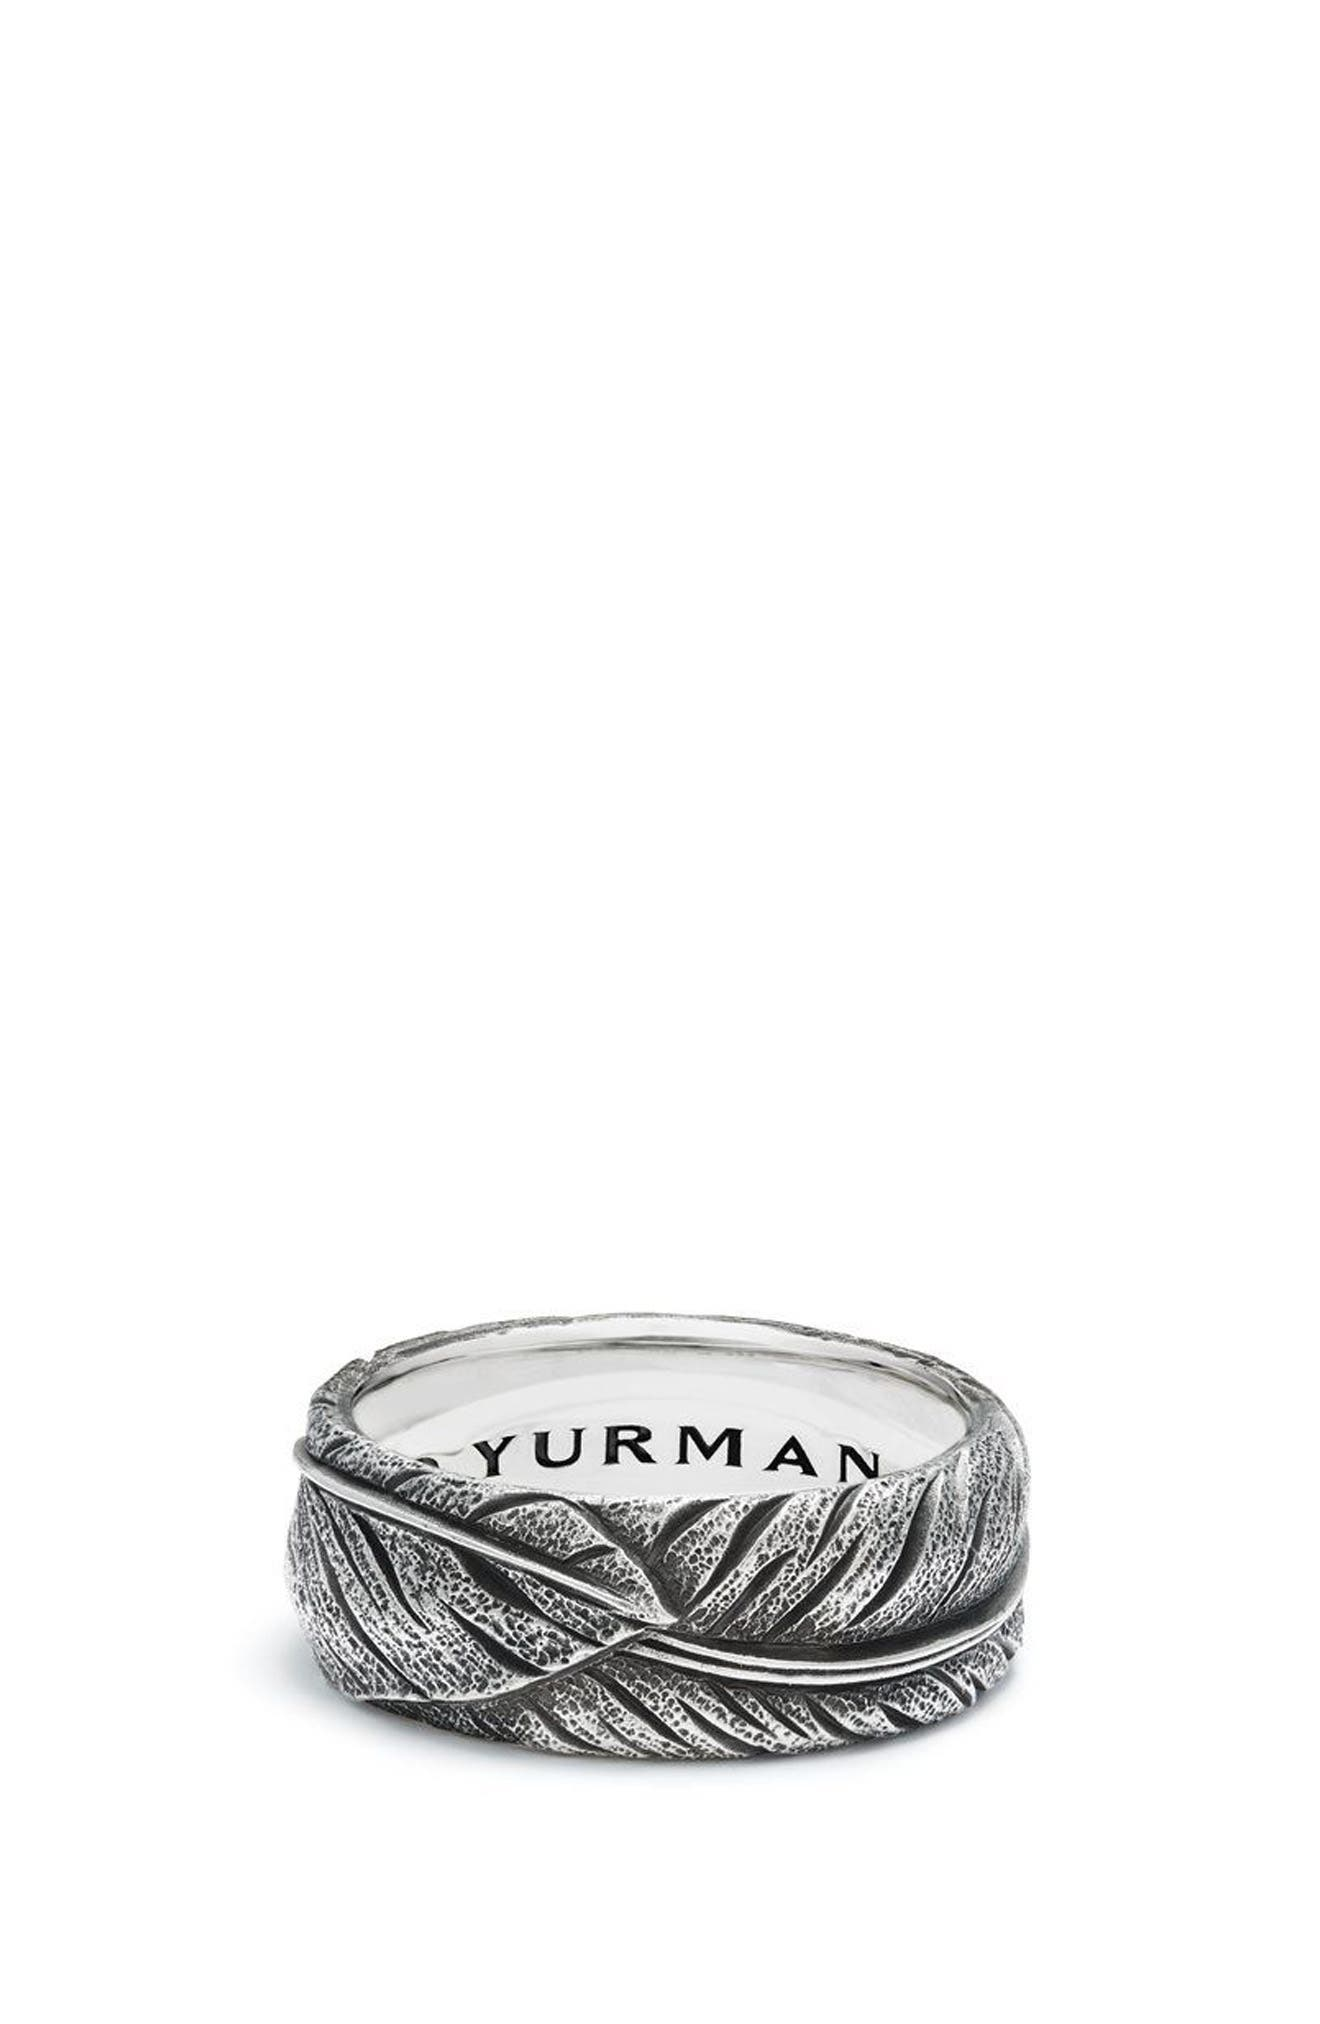 Southwest Narrow Feather Band Ring,                             Main thumbnail 1, color,                             SILVER